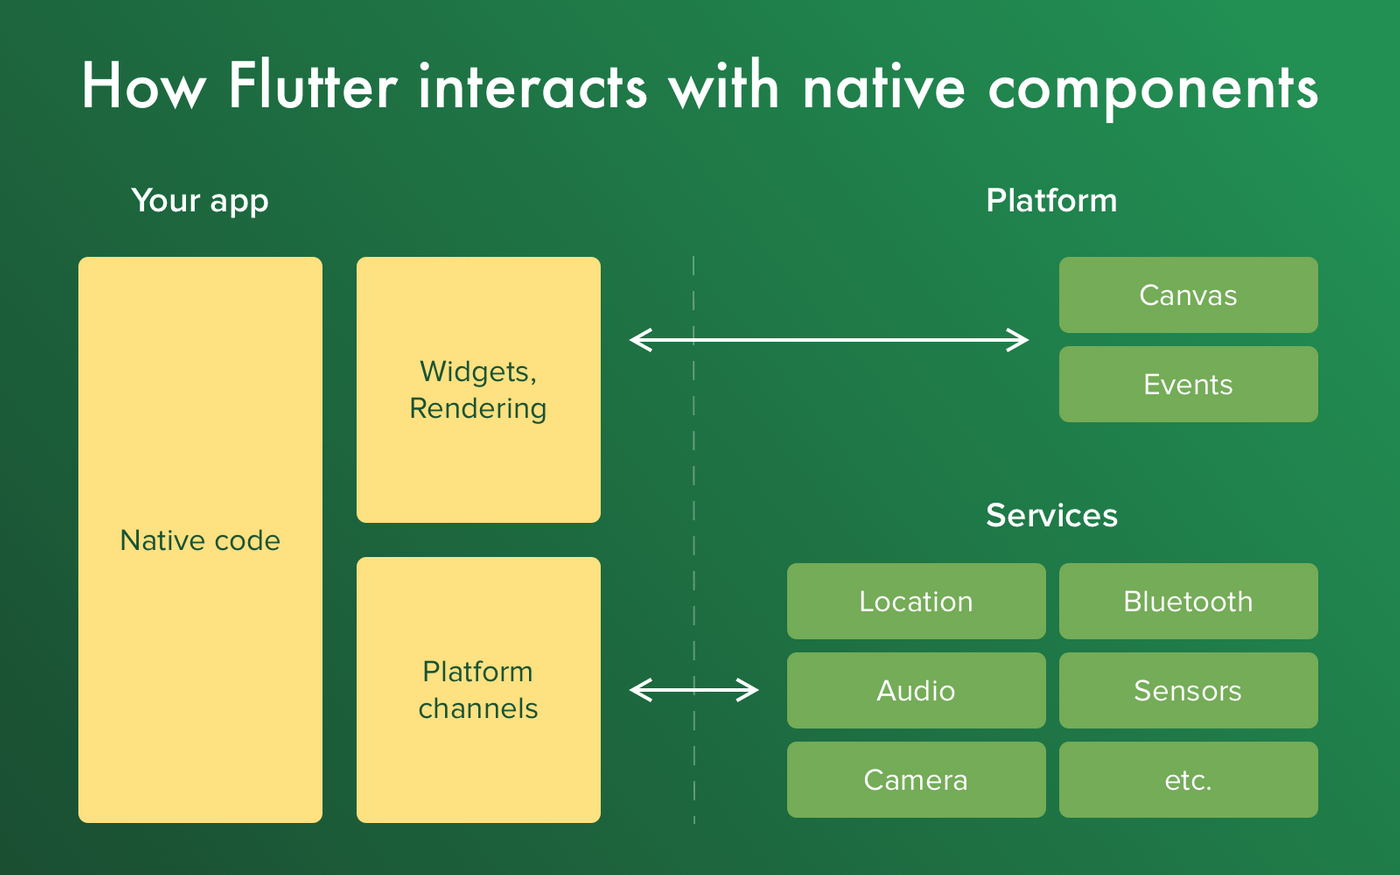 Flutter interacts with native components